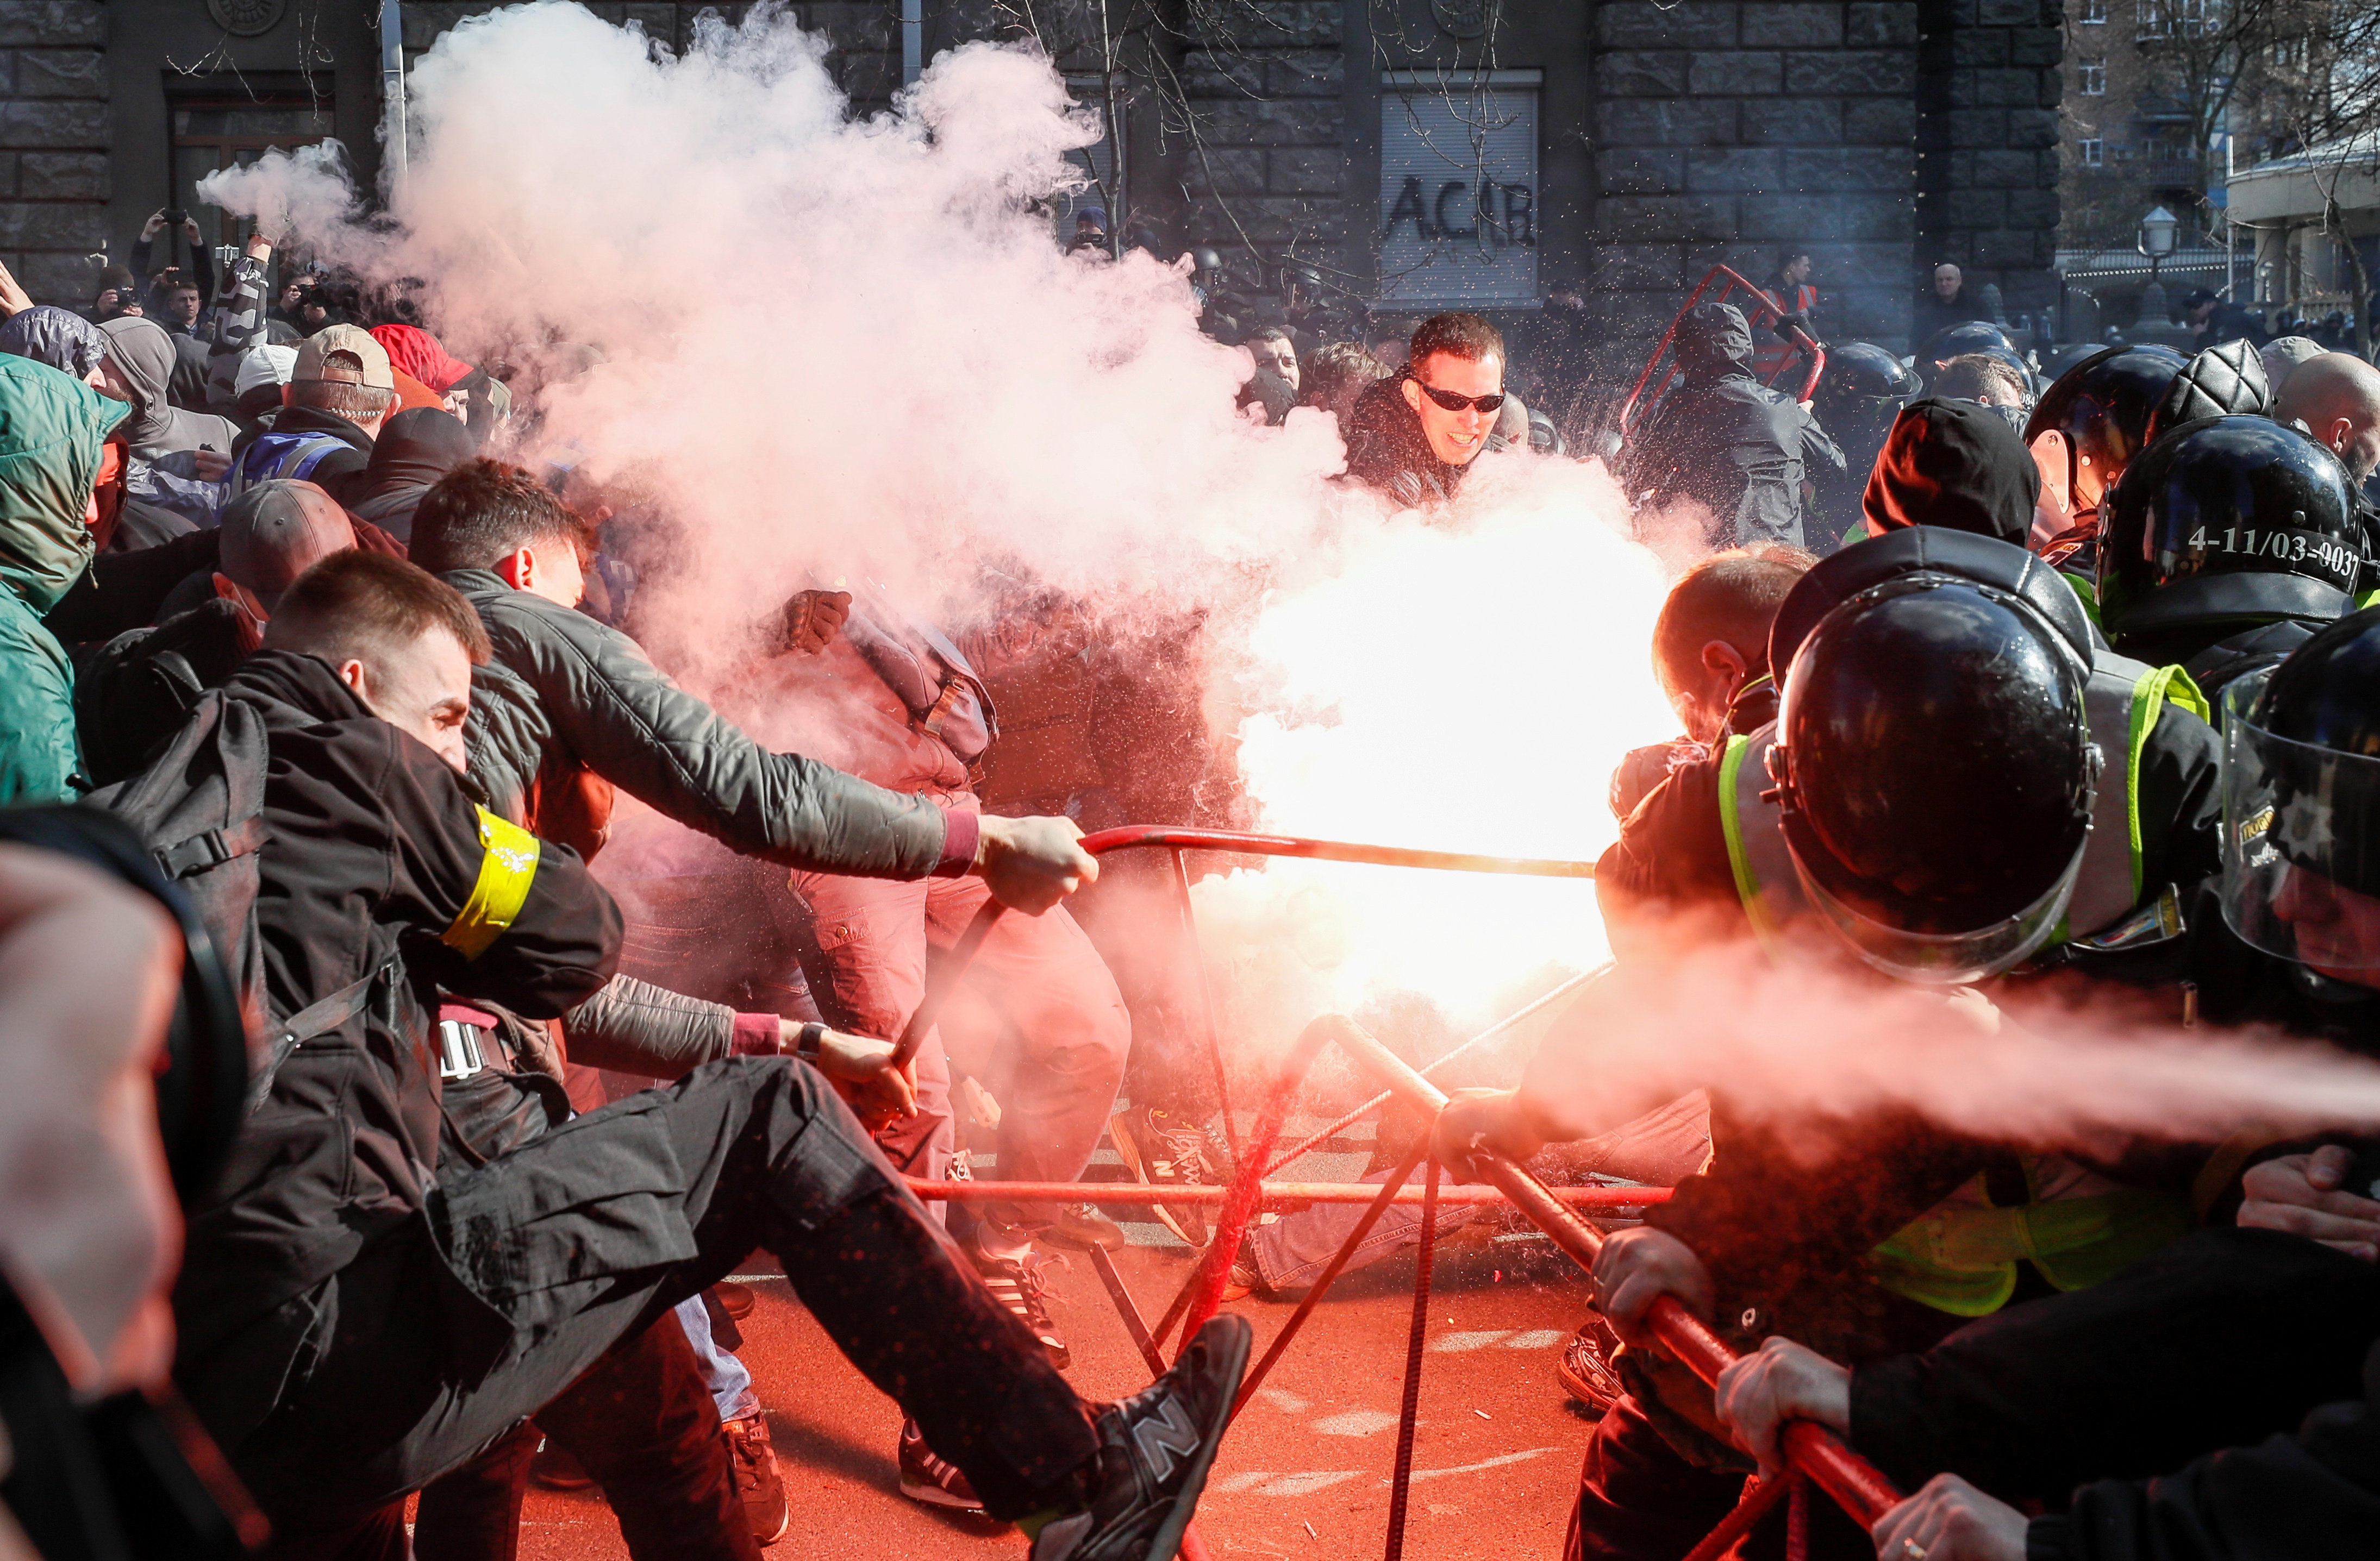 Members of Ukrainian nationalist parties scuffle with police officers during a rally to demand an investigation into the corr